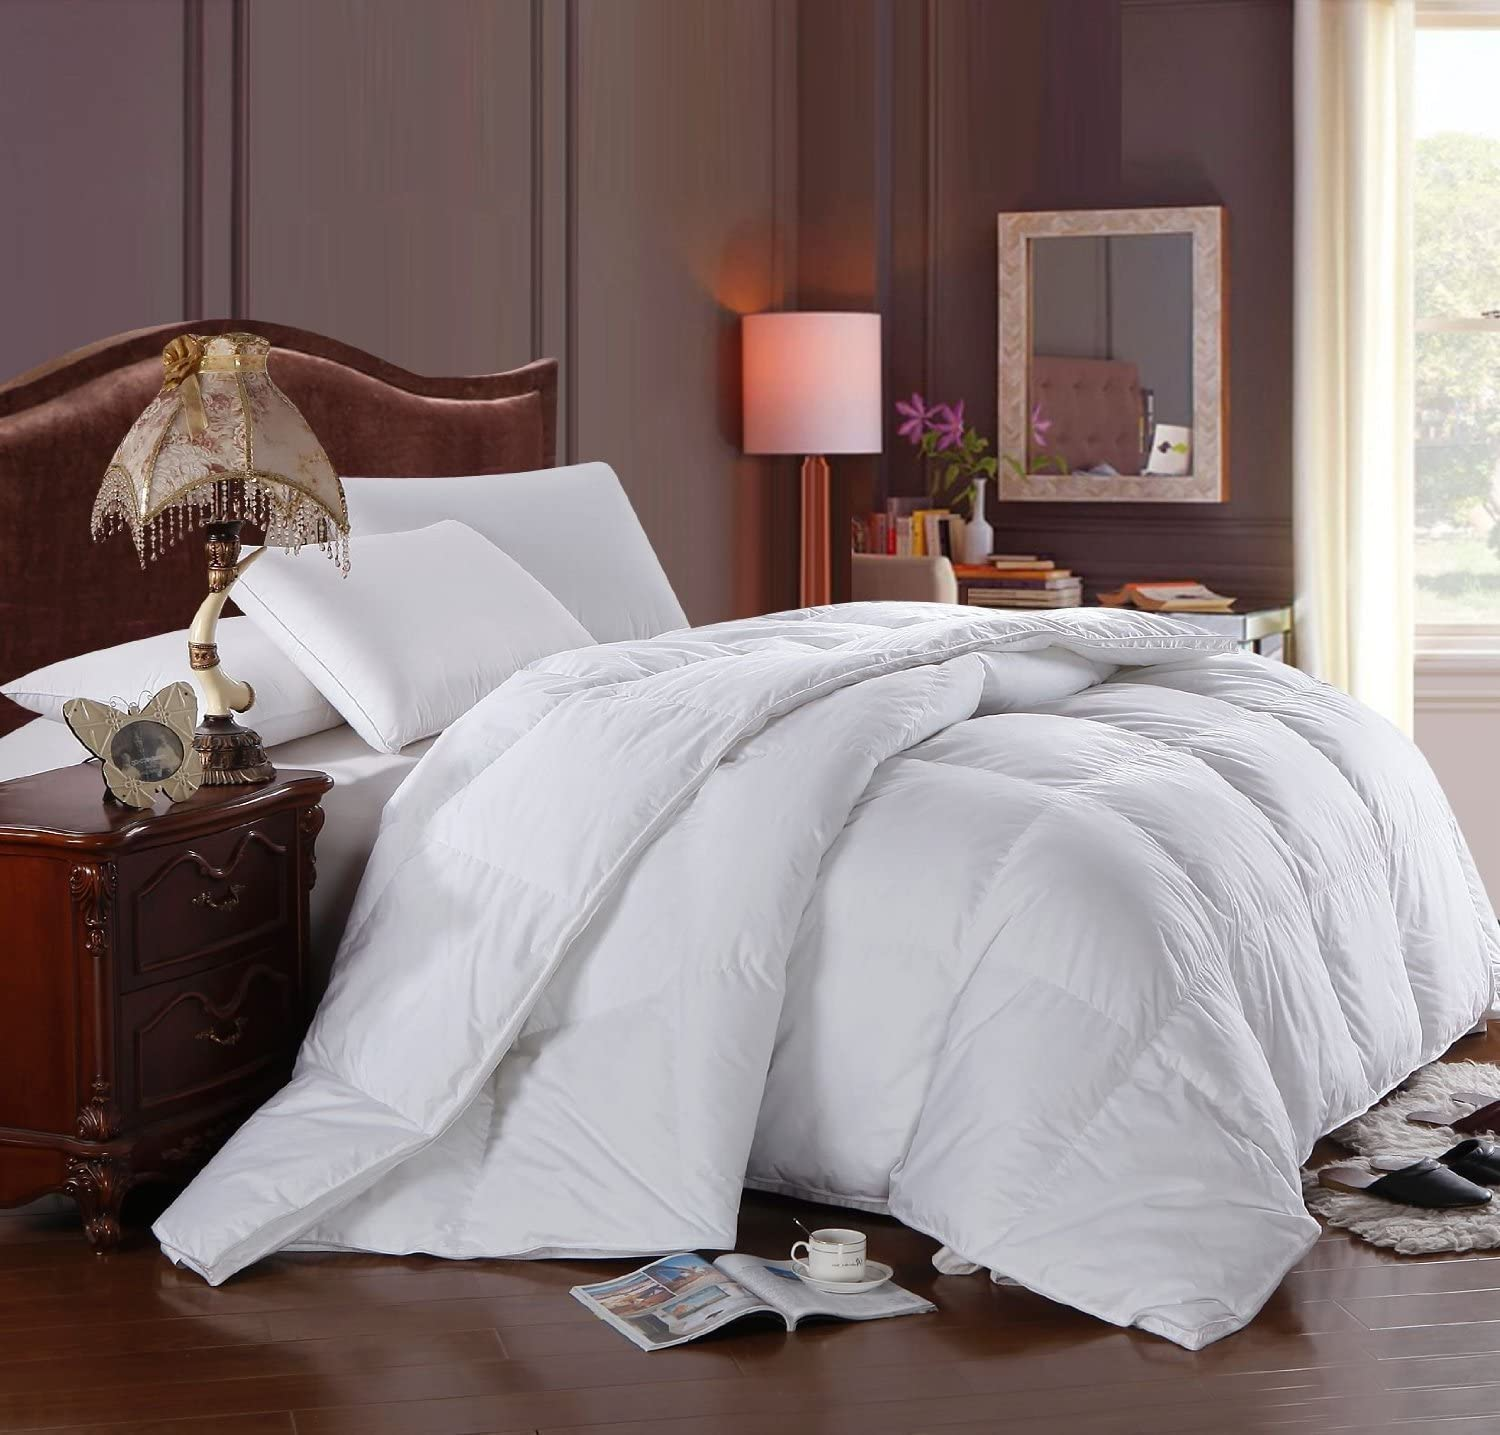 Royal Linen White Duck Down Feather Comforter Duvet 300TC 100/% Cotton Cover